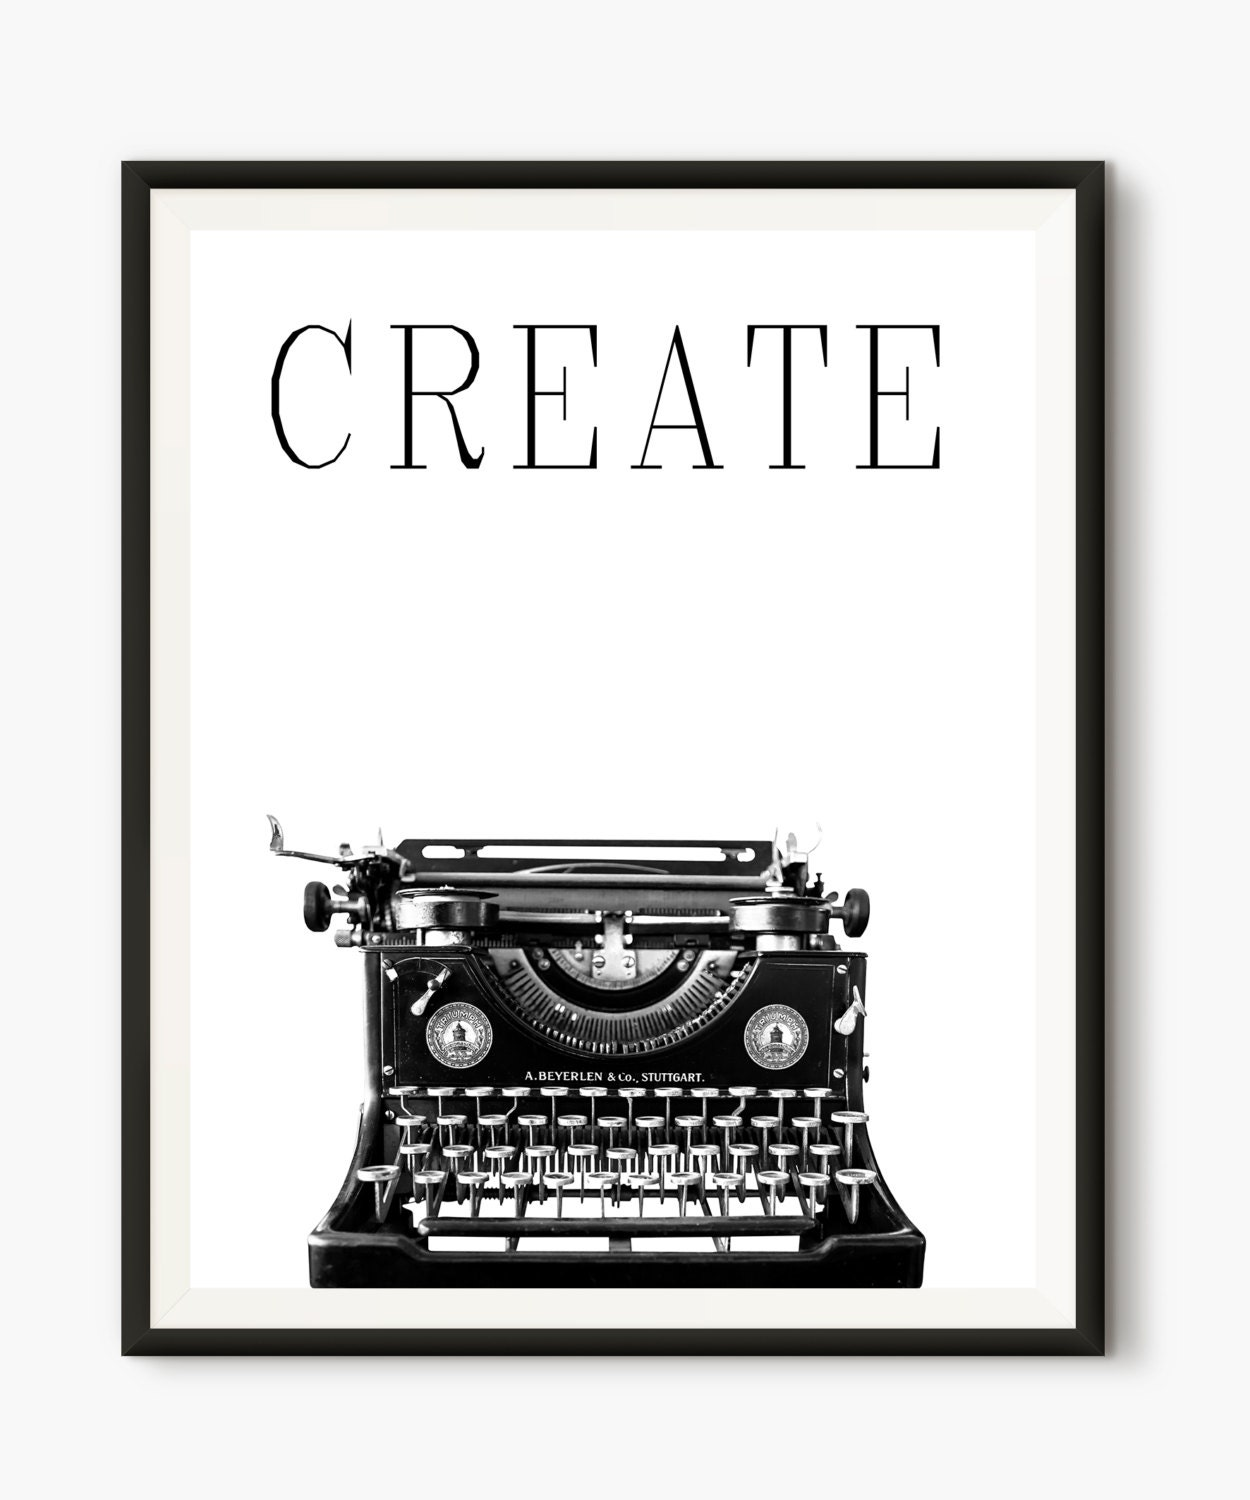 Typewriter Poster Typewriter Photo Create Words Modern